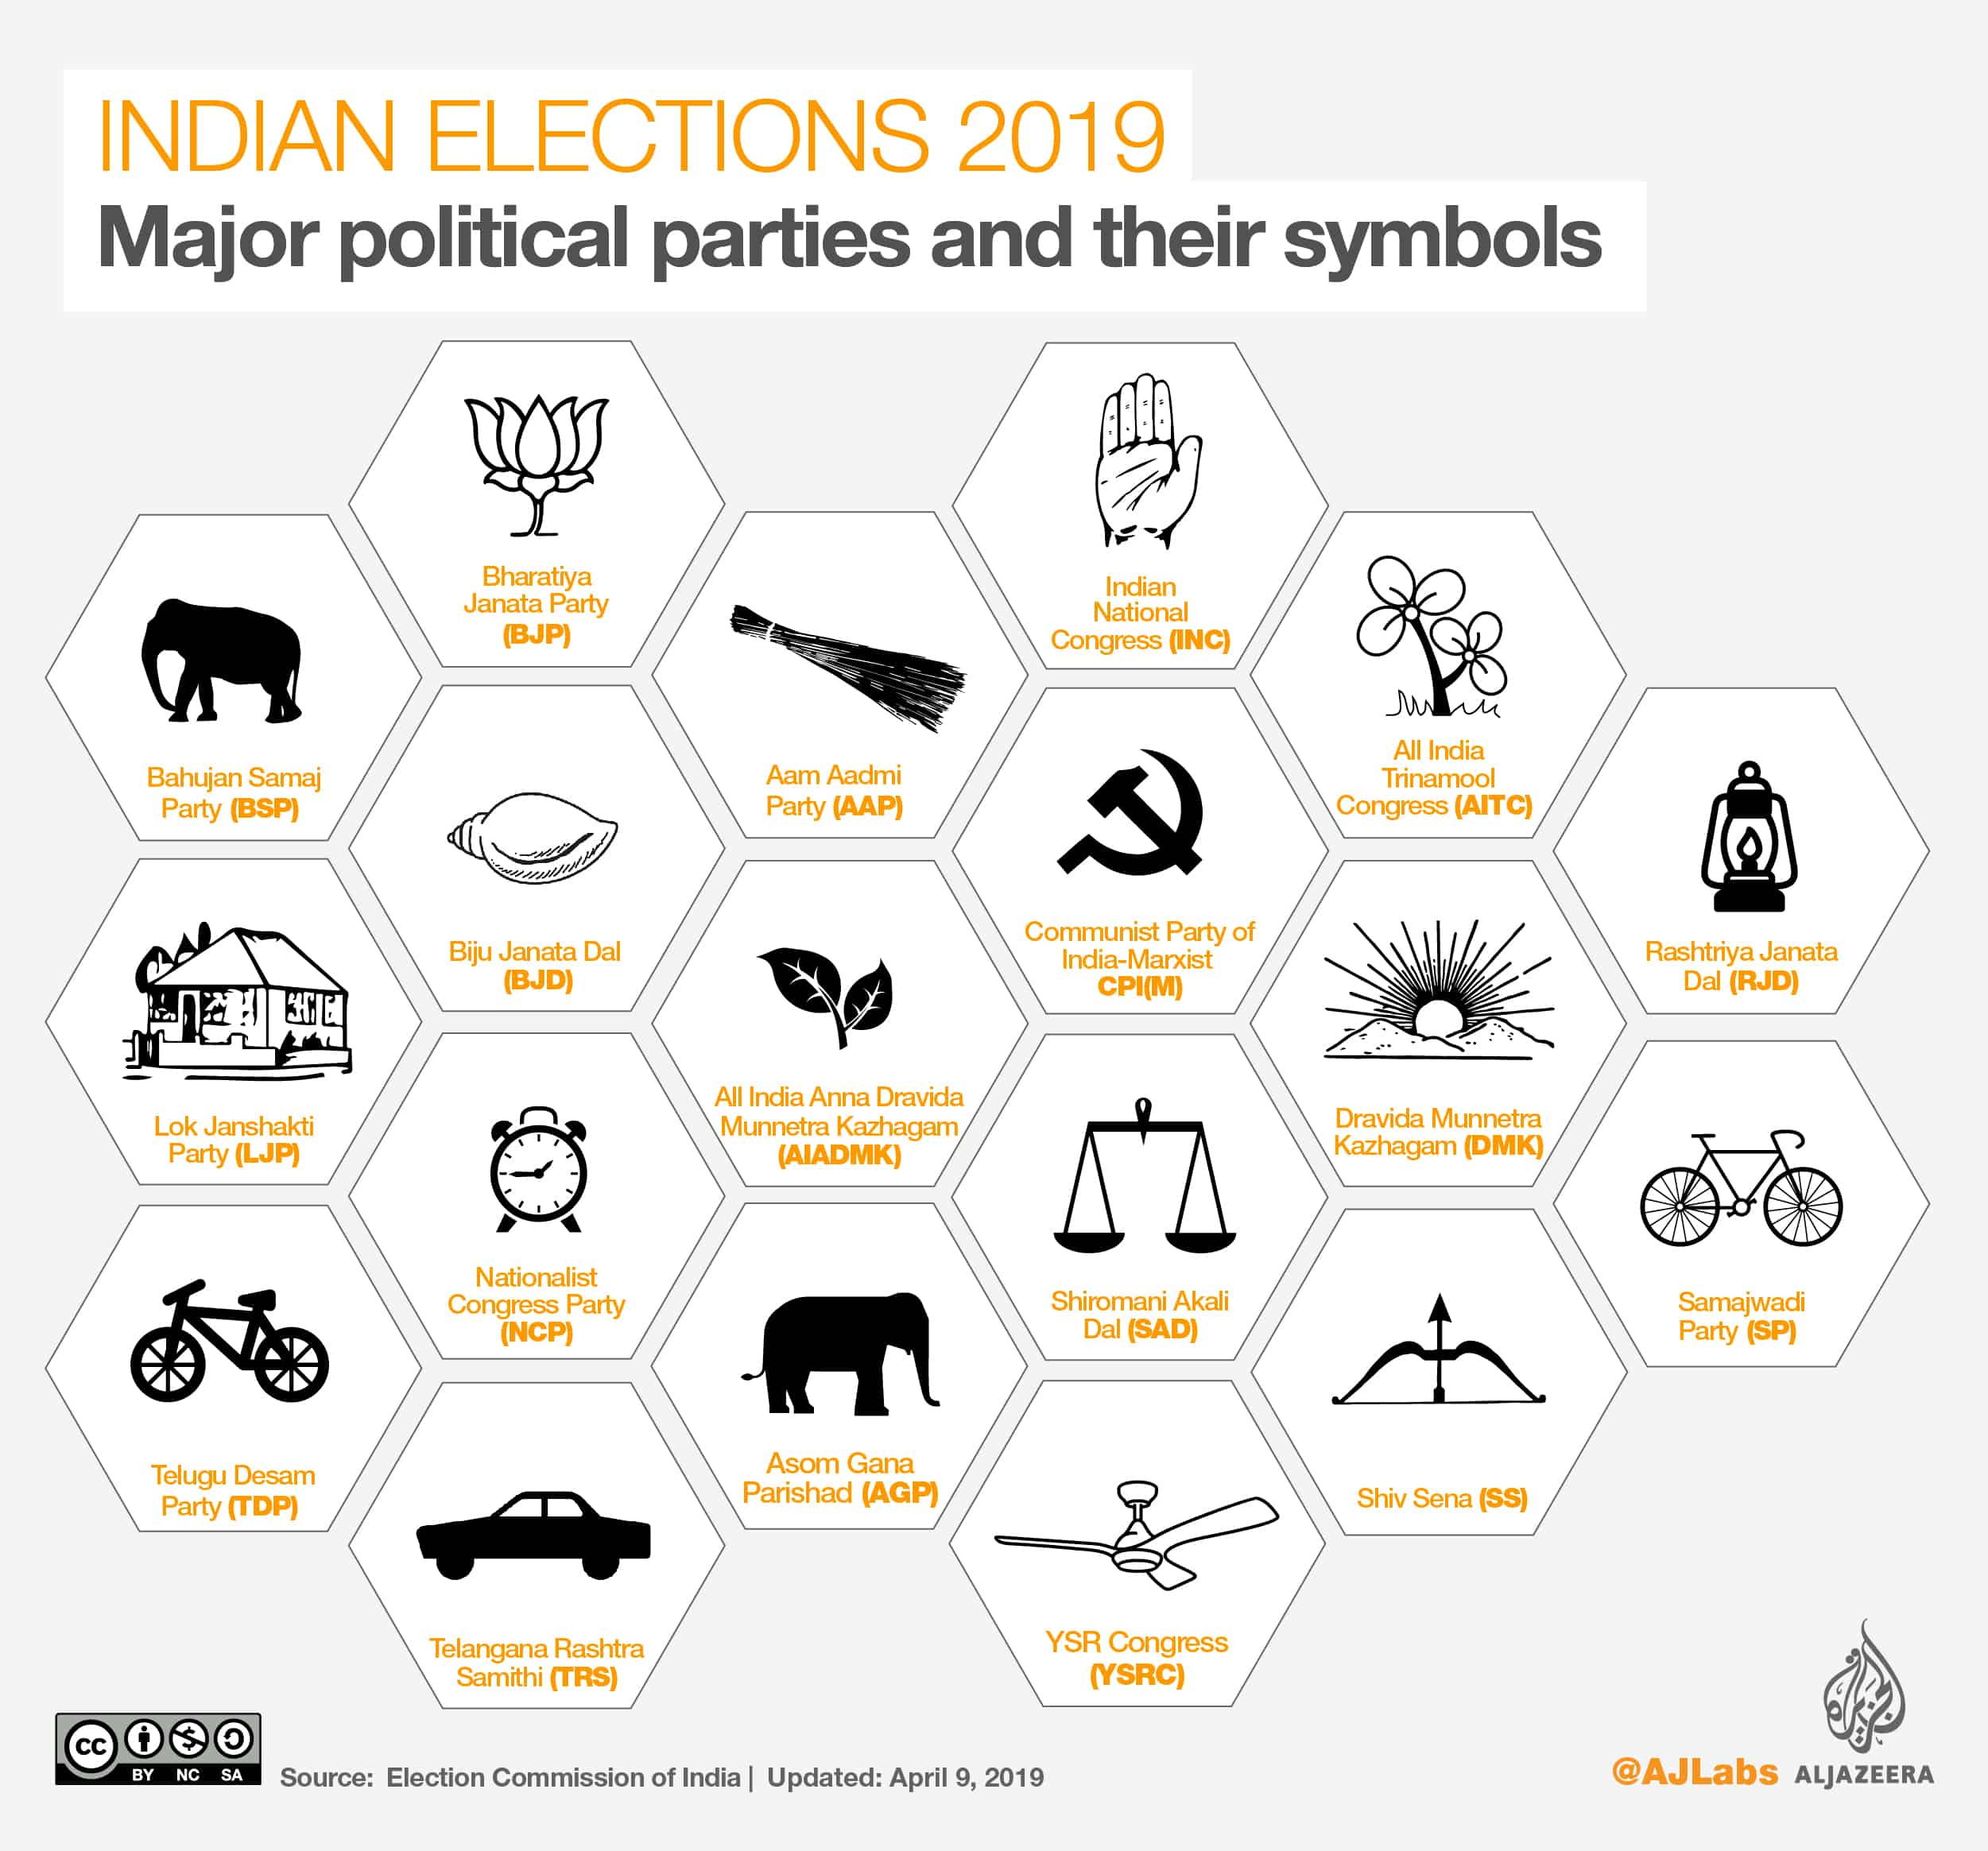 Indian Elections 2019 - Facts and Figures - House of the People Lok Sabha Lower House Elections Results on May 23 - Major Parties and Symbol